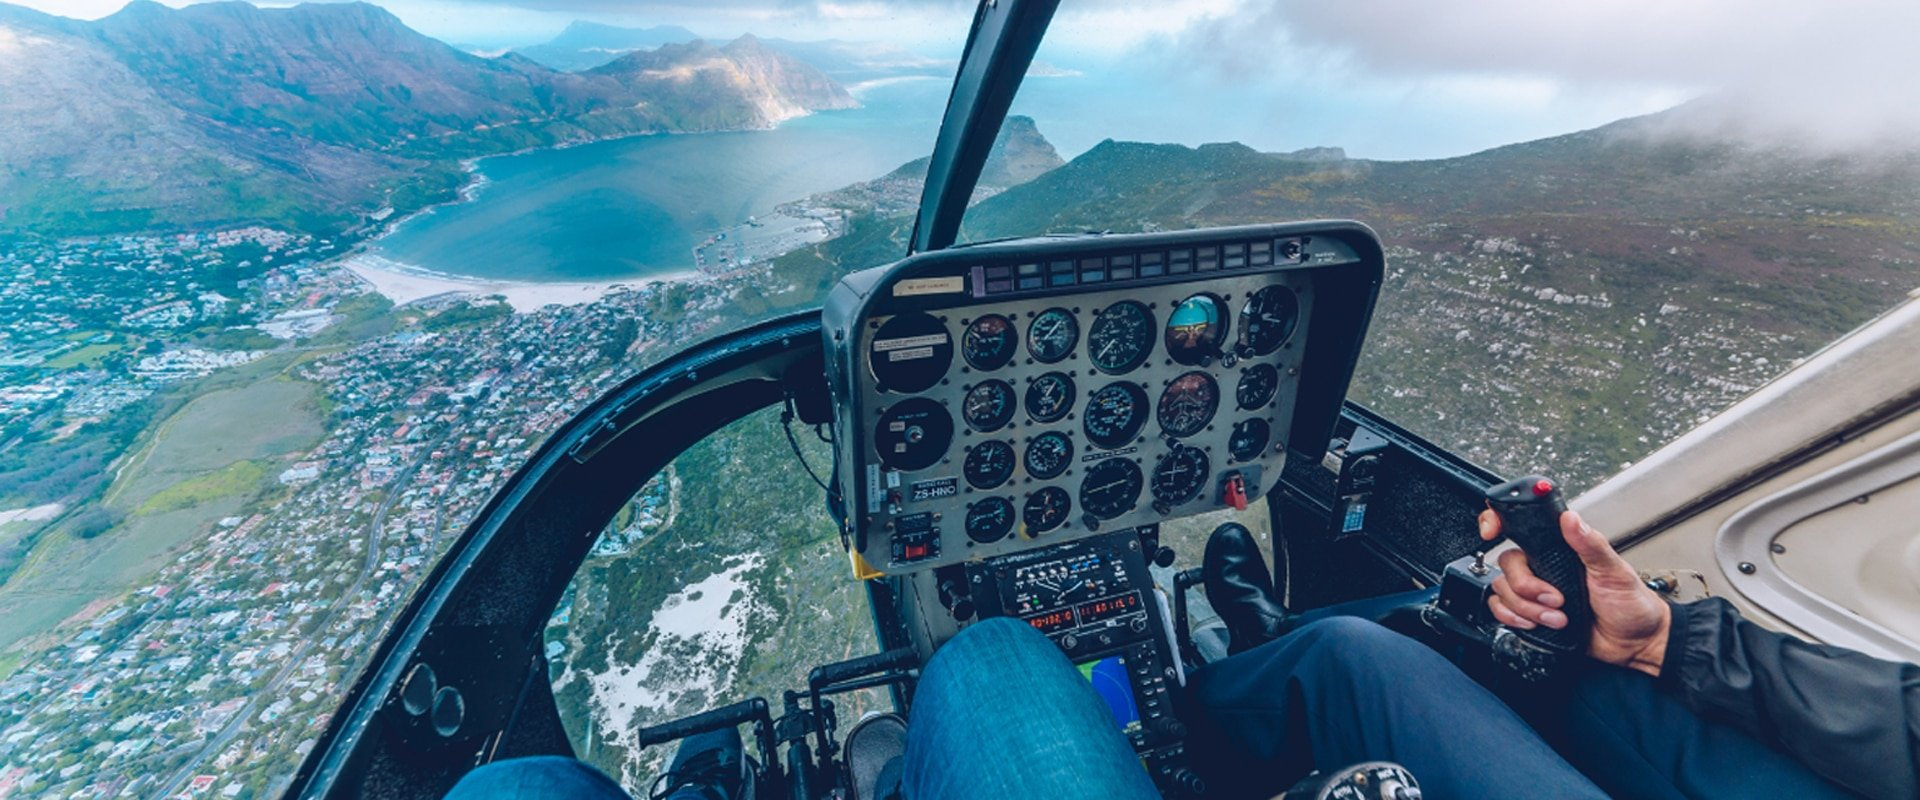 Hop in a helicopter and touch down at Cape Point for a delicious picnic